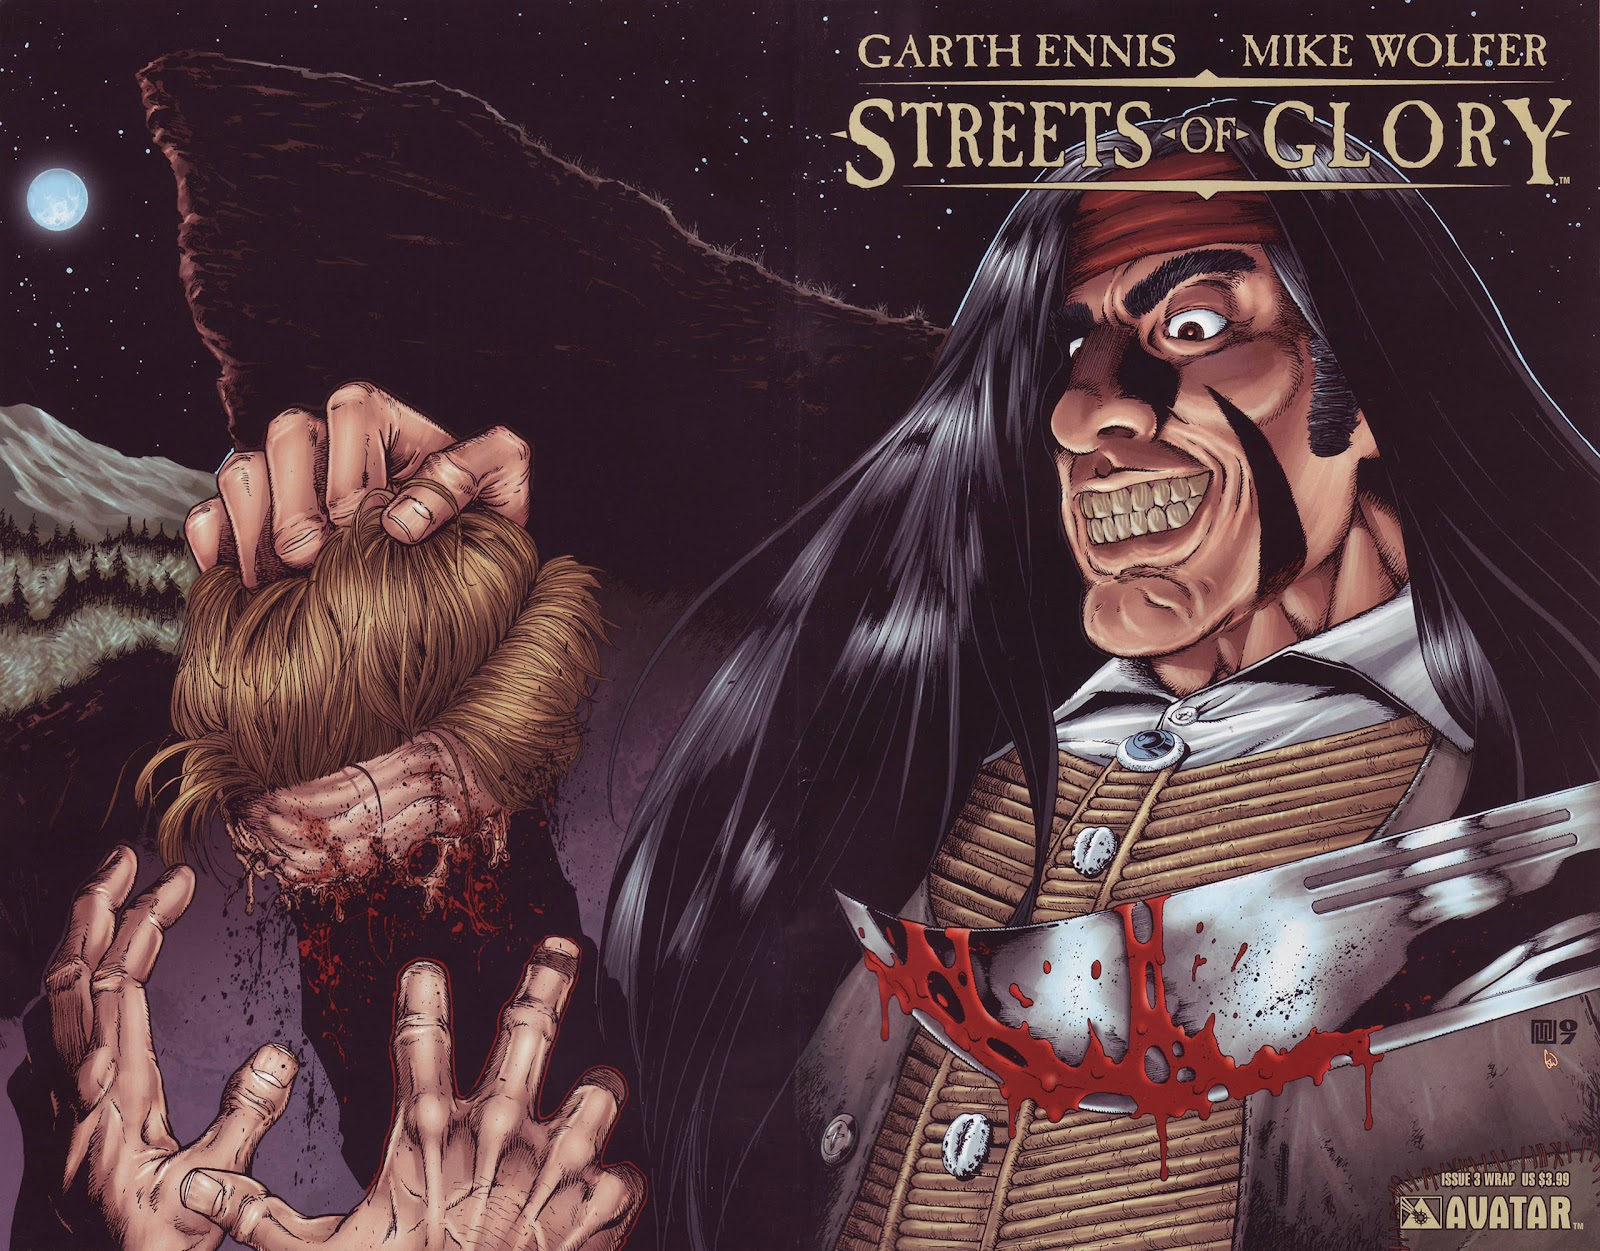 Garth Ennis' Streets of Glory issue 3 - Page 1